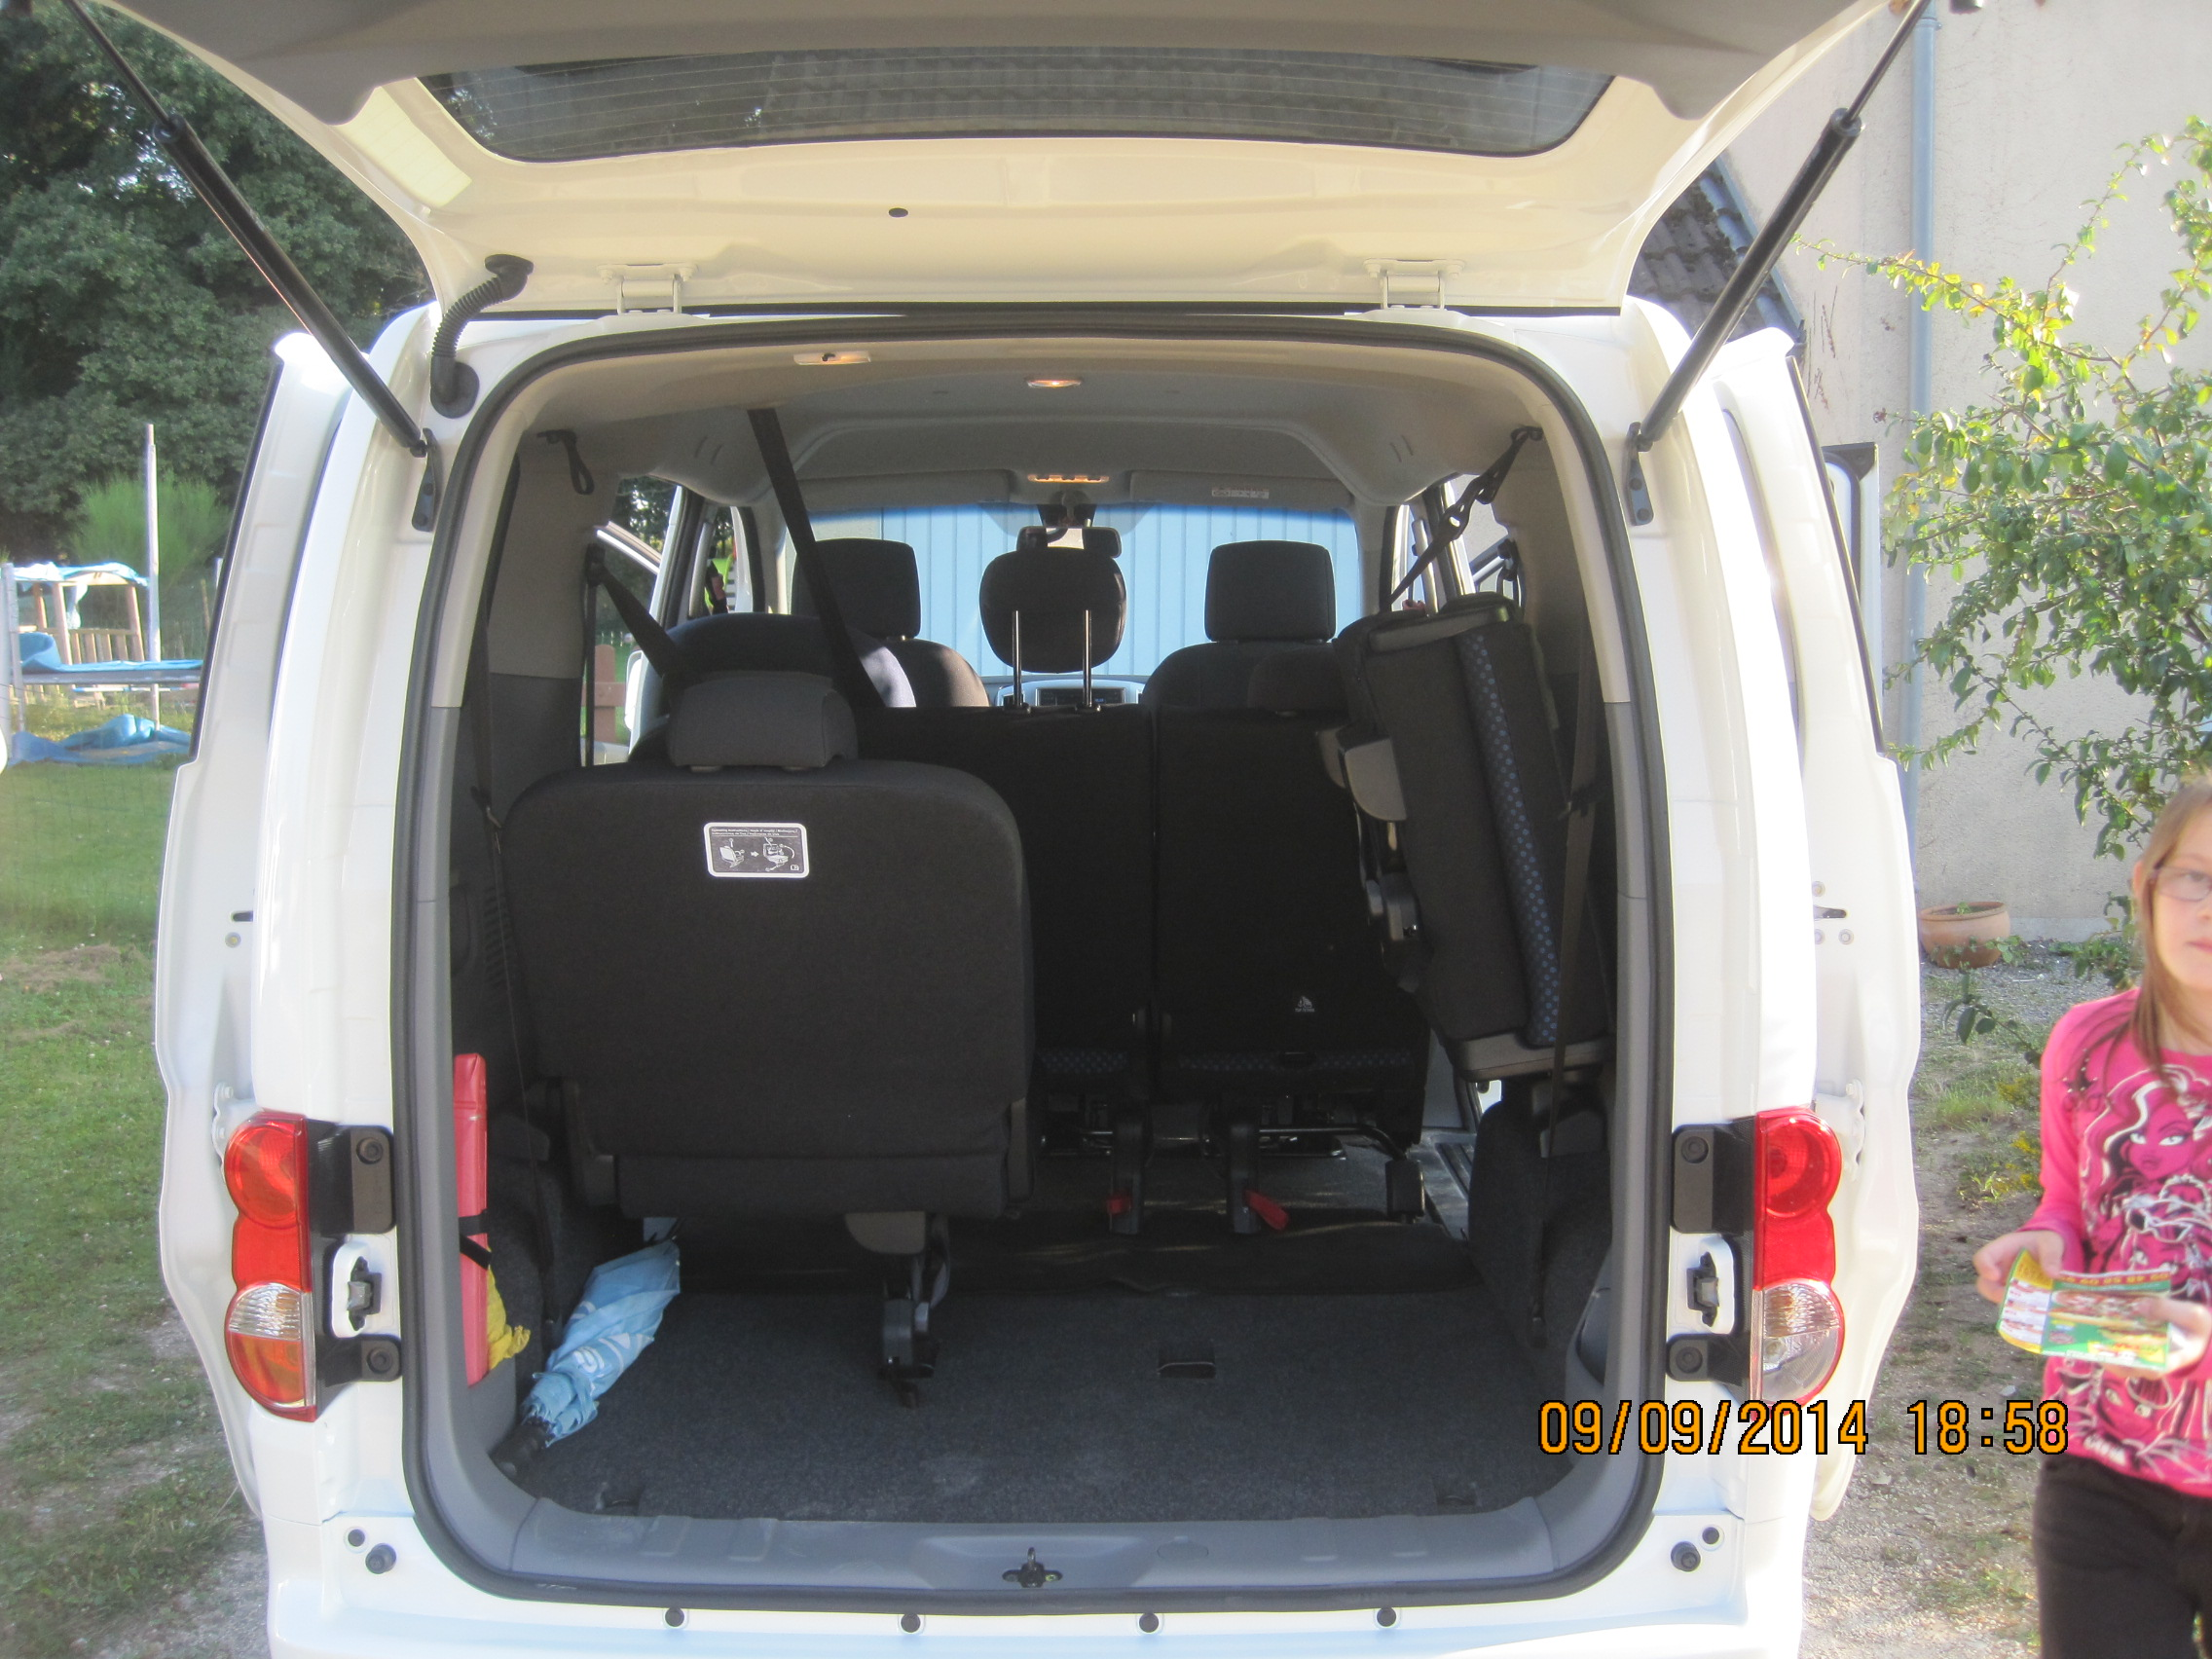 nissan nv200 7 places nissan e nv200 evalia le ludospace lectrique 7 places l 39 essai nissan. Black Bedroom Furniture Sets. Home Design Ideas